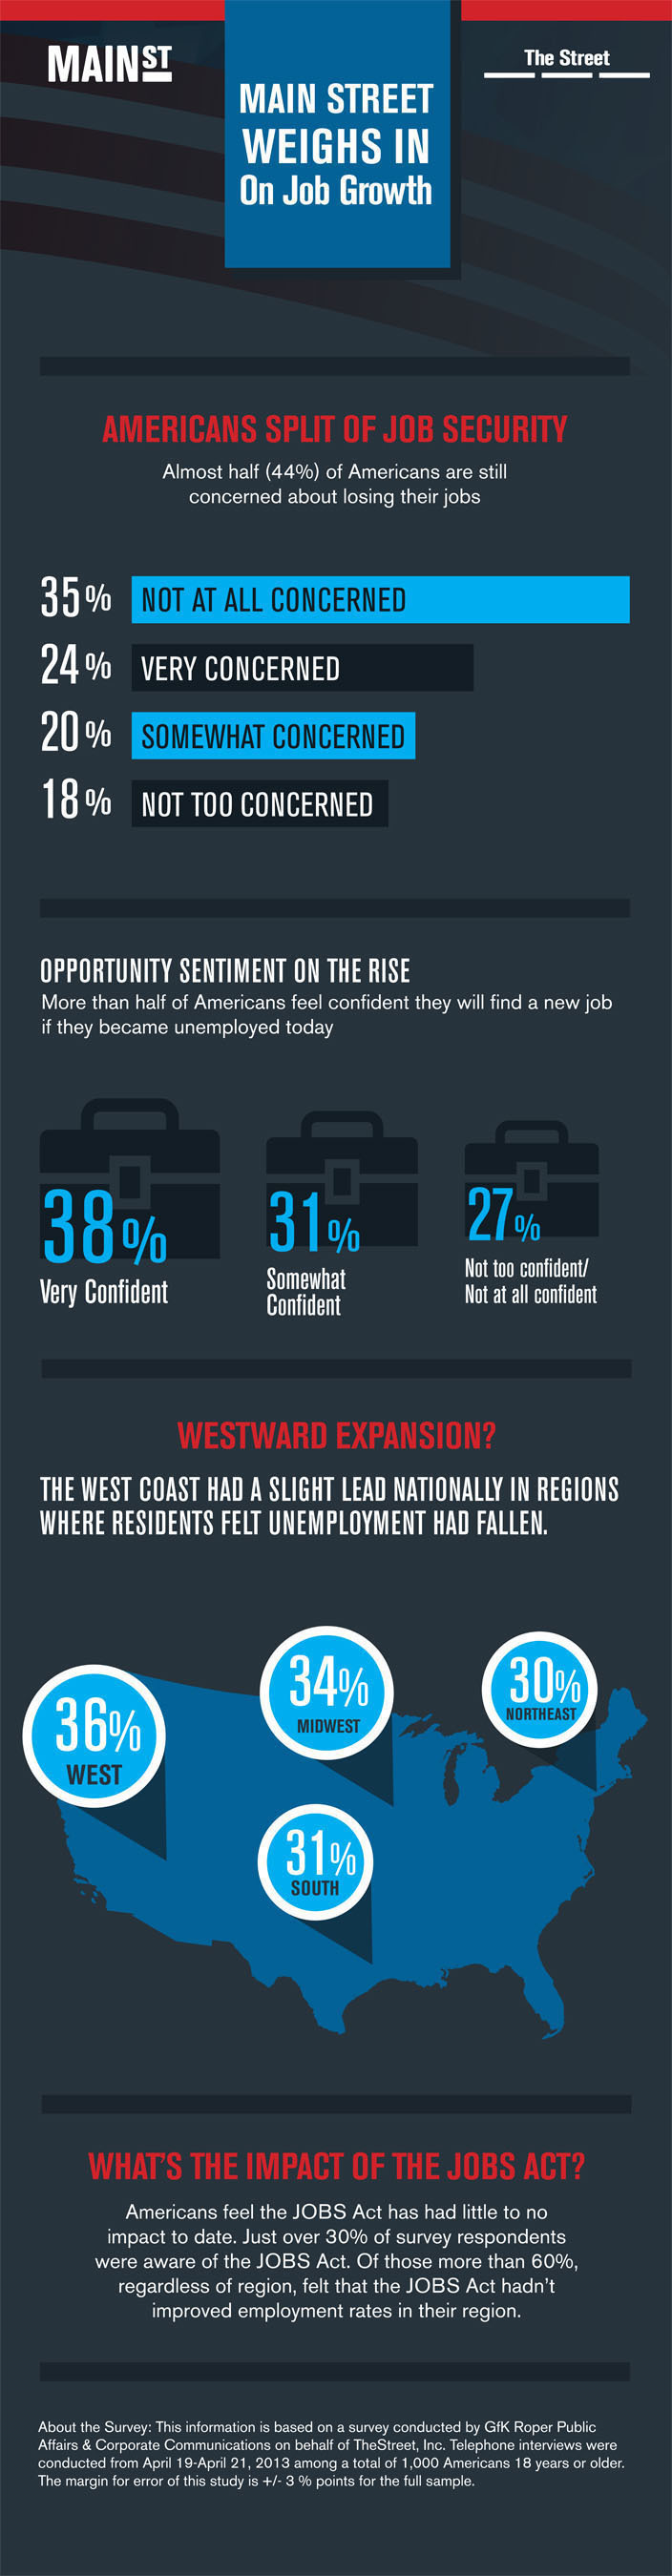 Anxiety Persists; Almost Half Of U.S. Still Fearful Of Losing Their Jobs